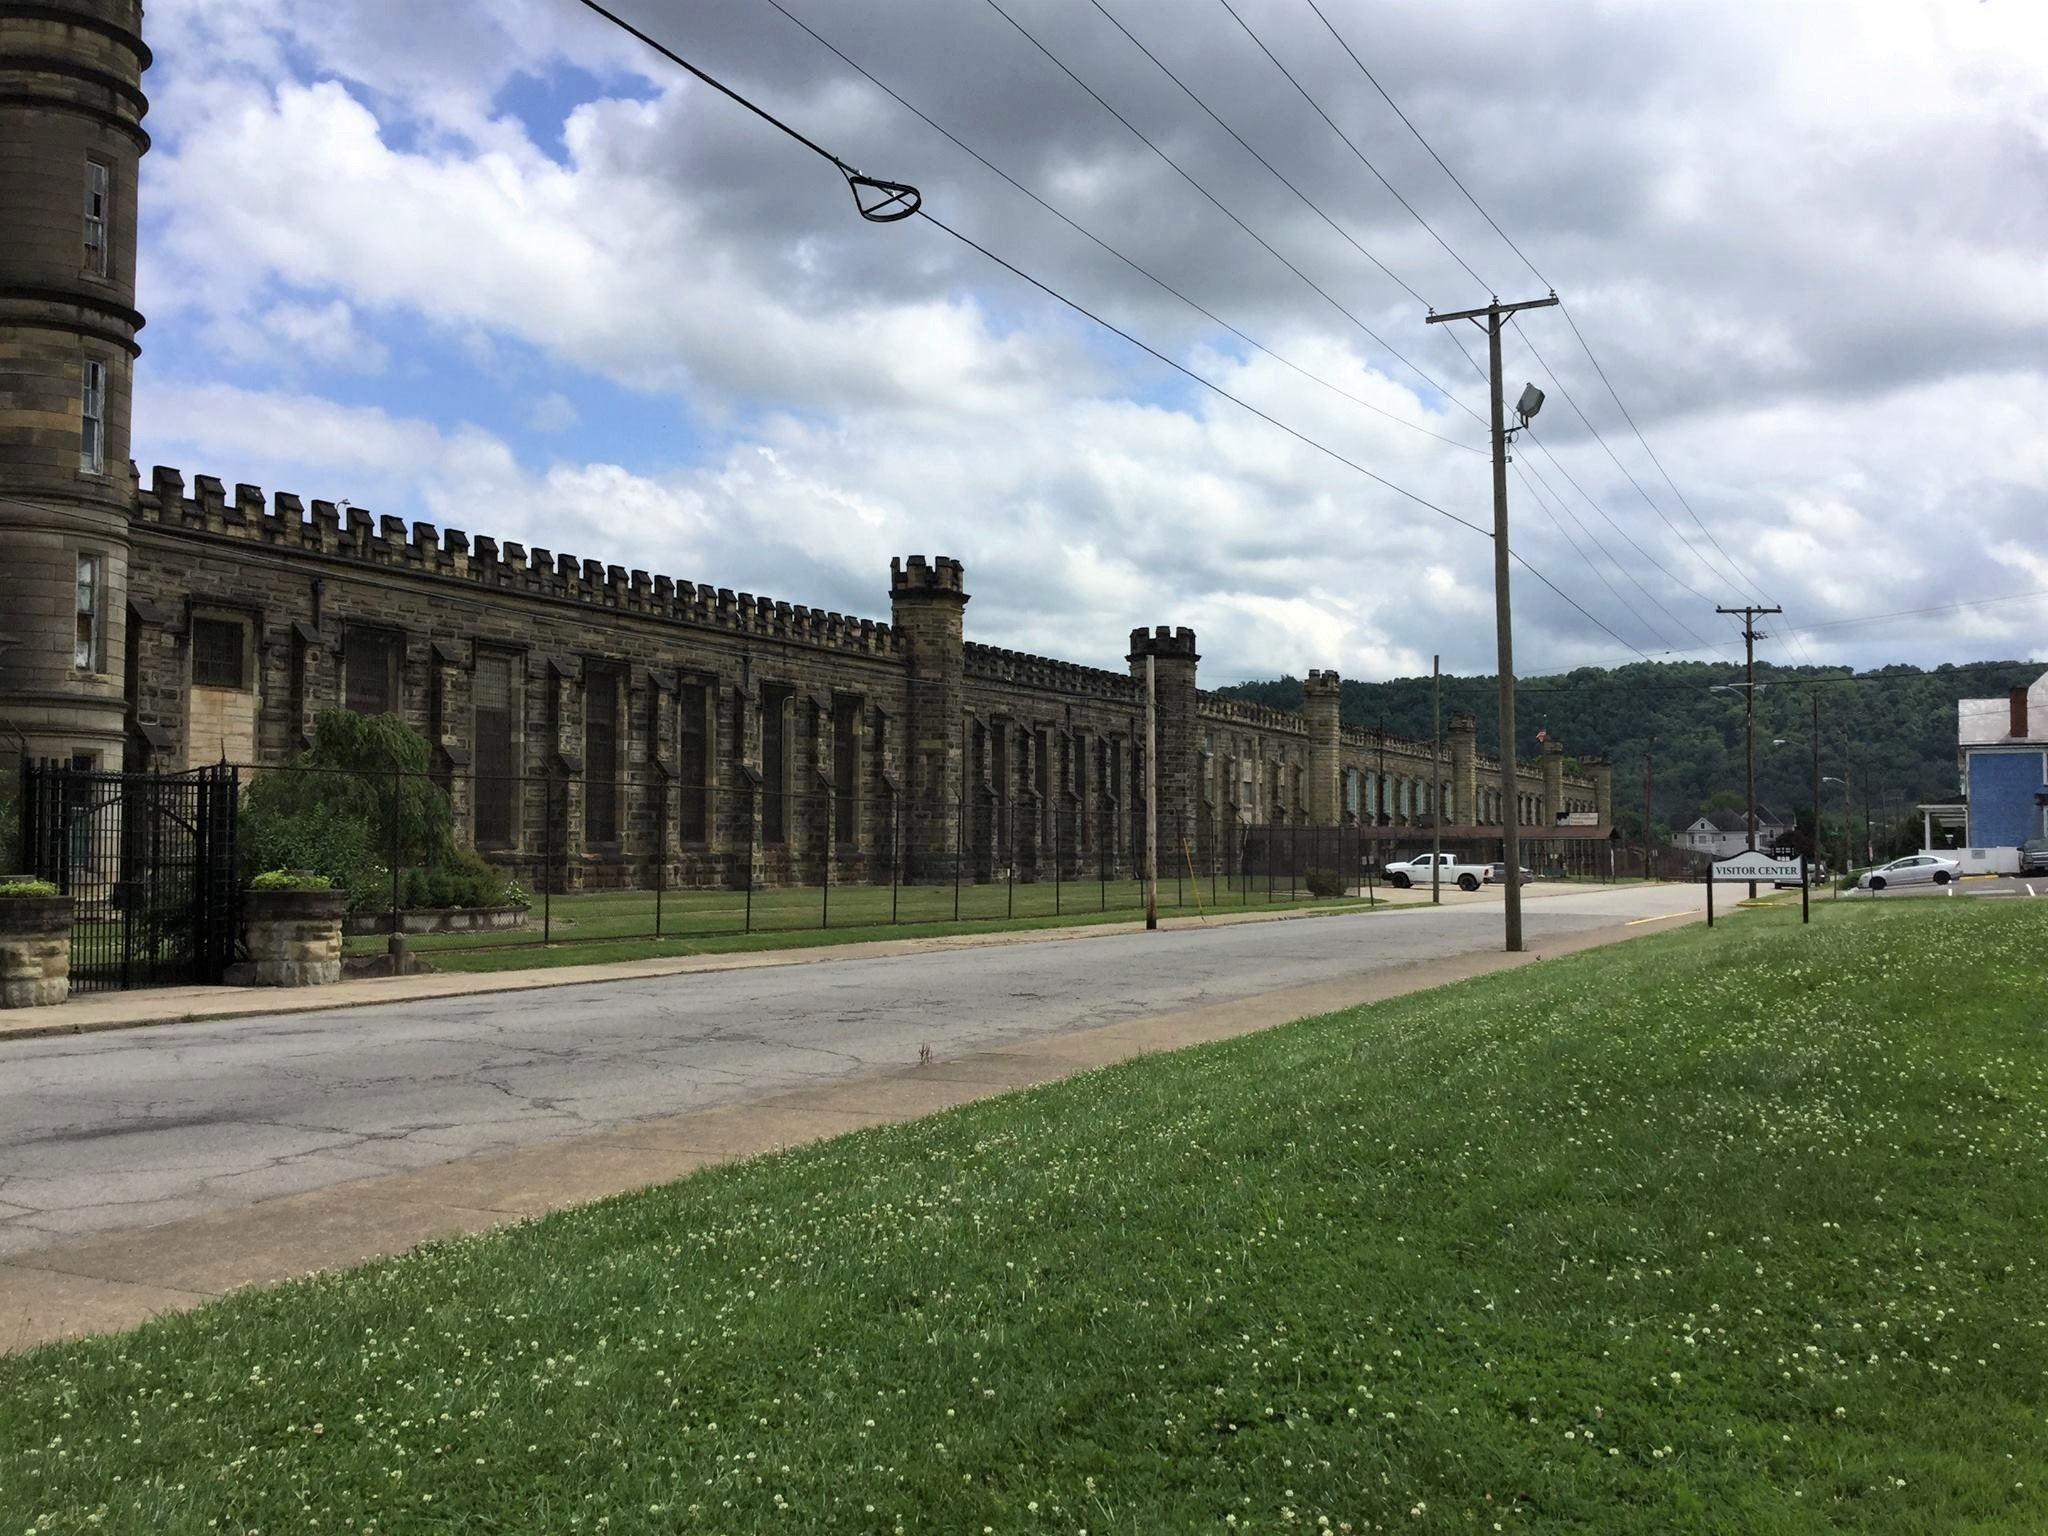 State Penitentiary looking south from the front entrance.